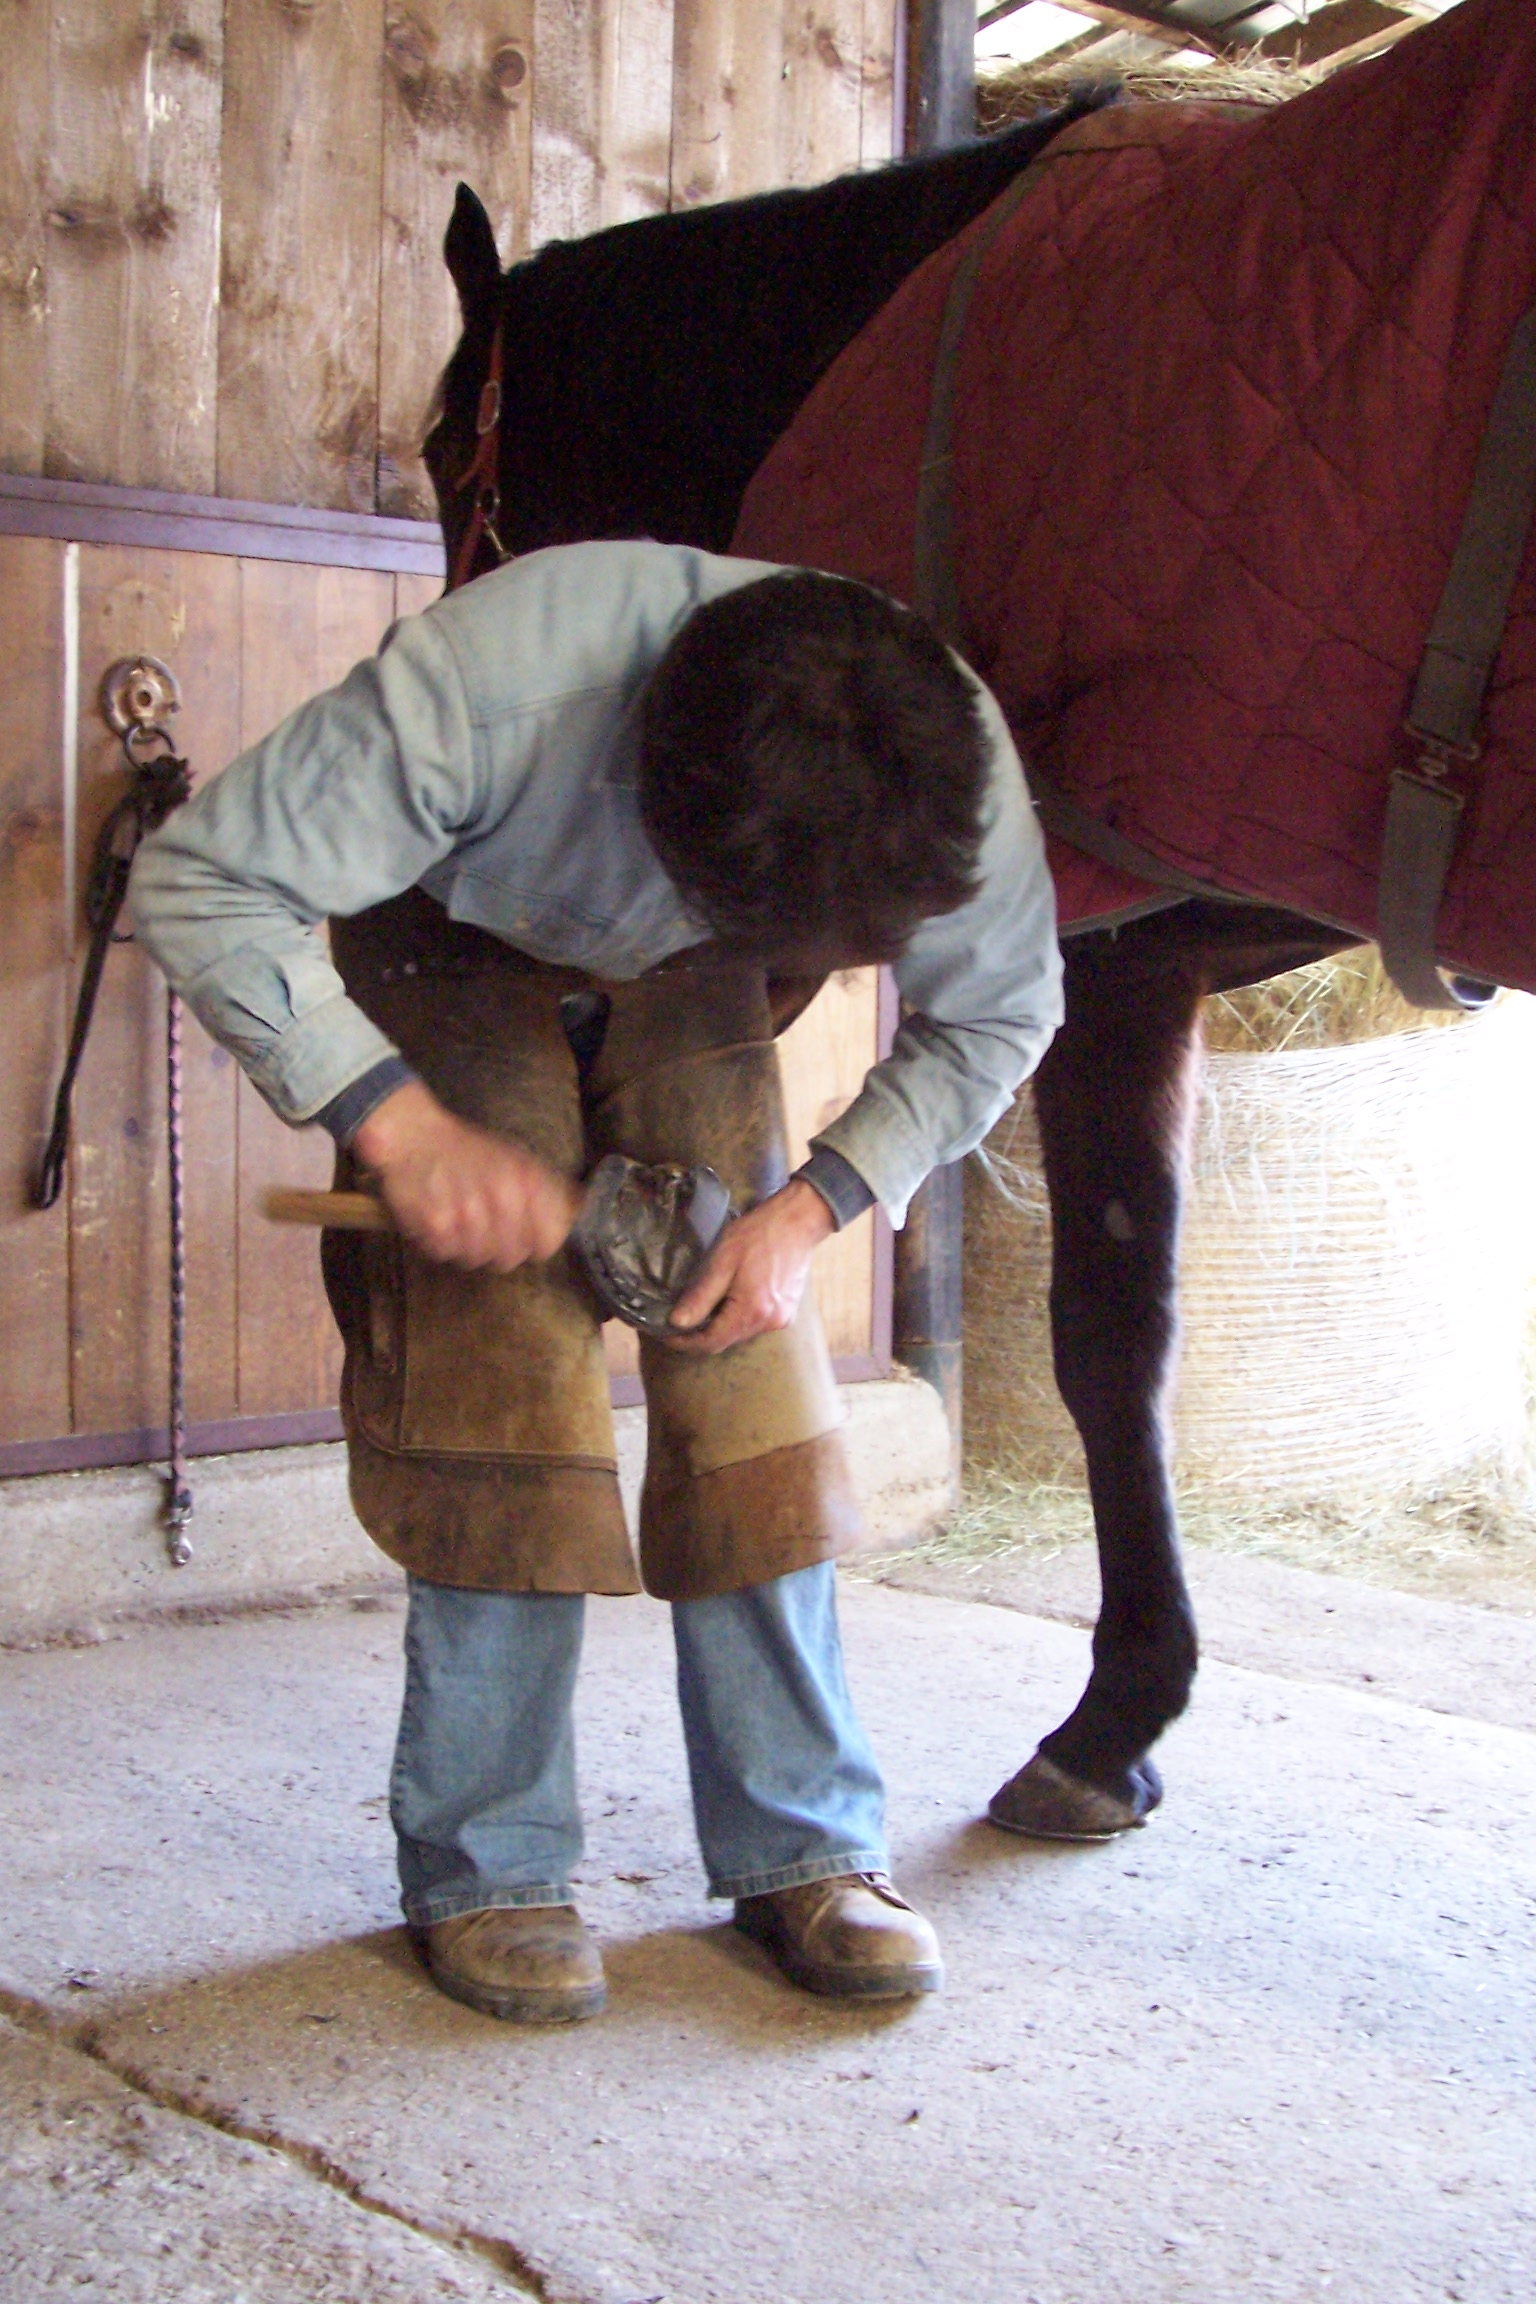 Source: https://en.wikipedia.org/wiki/Horse_care#/media/File:Italian_farrier_2006_1.jpg